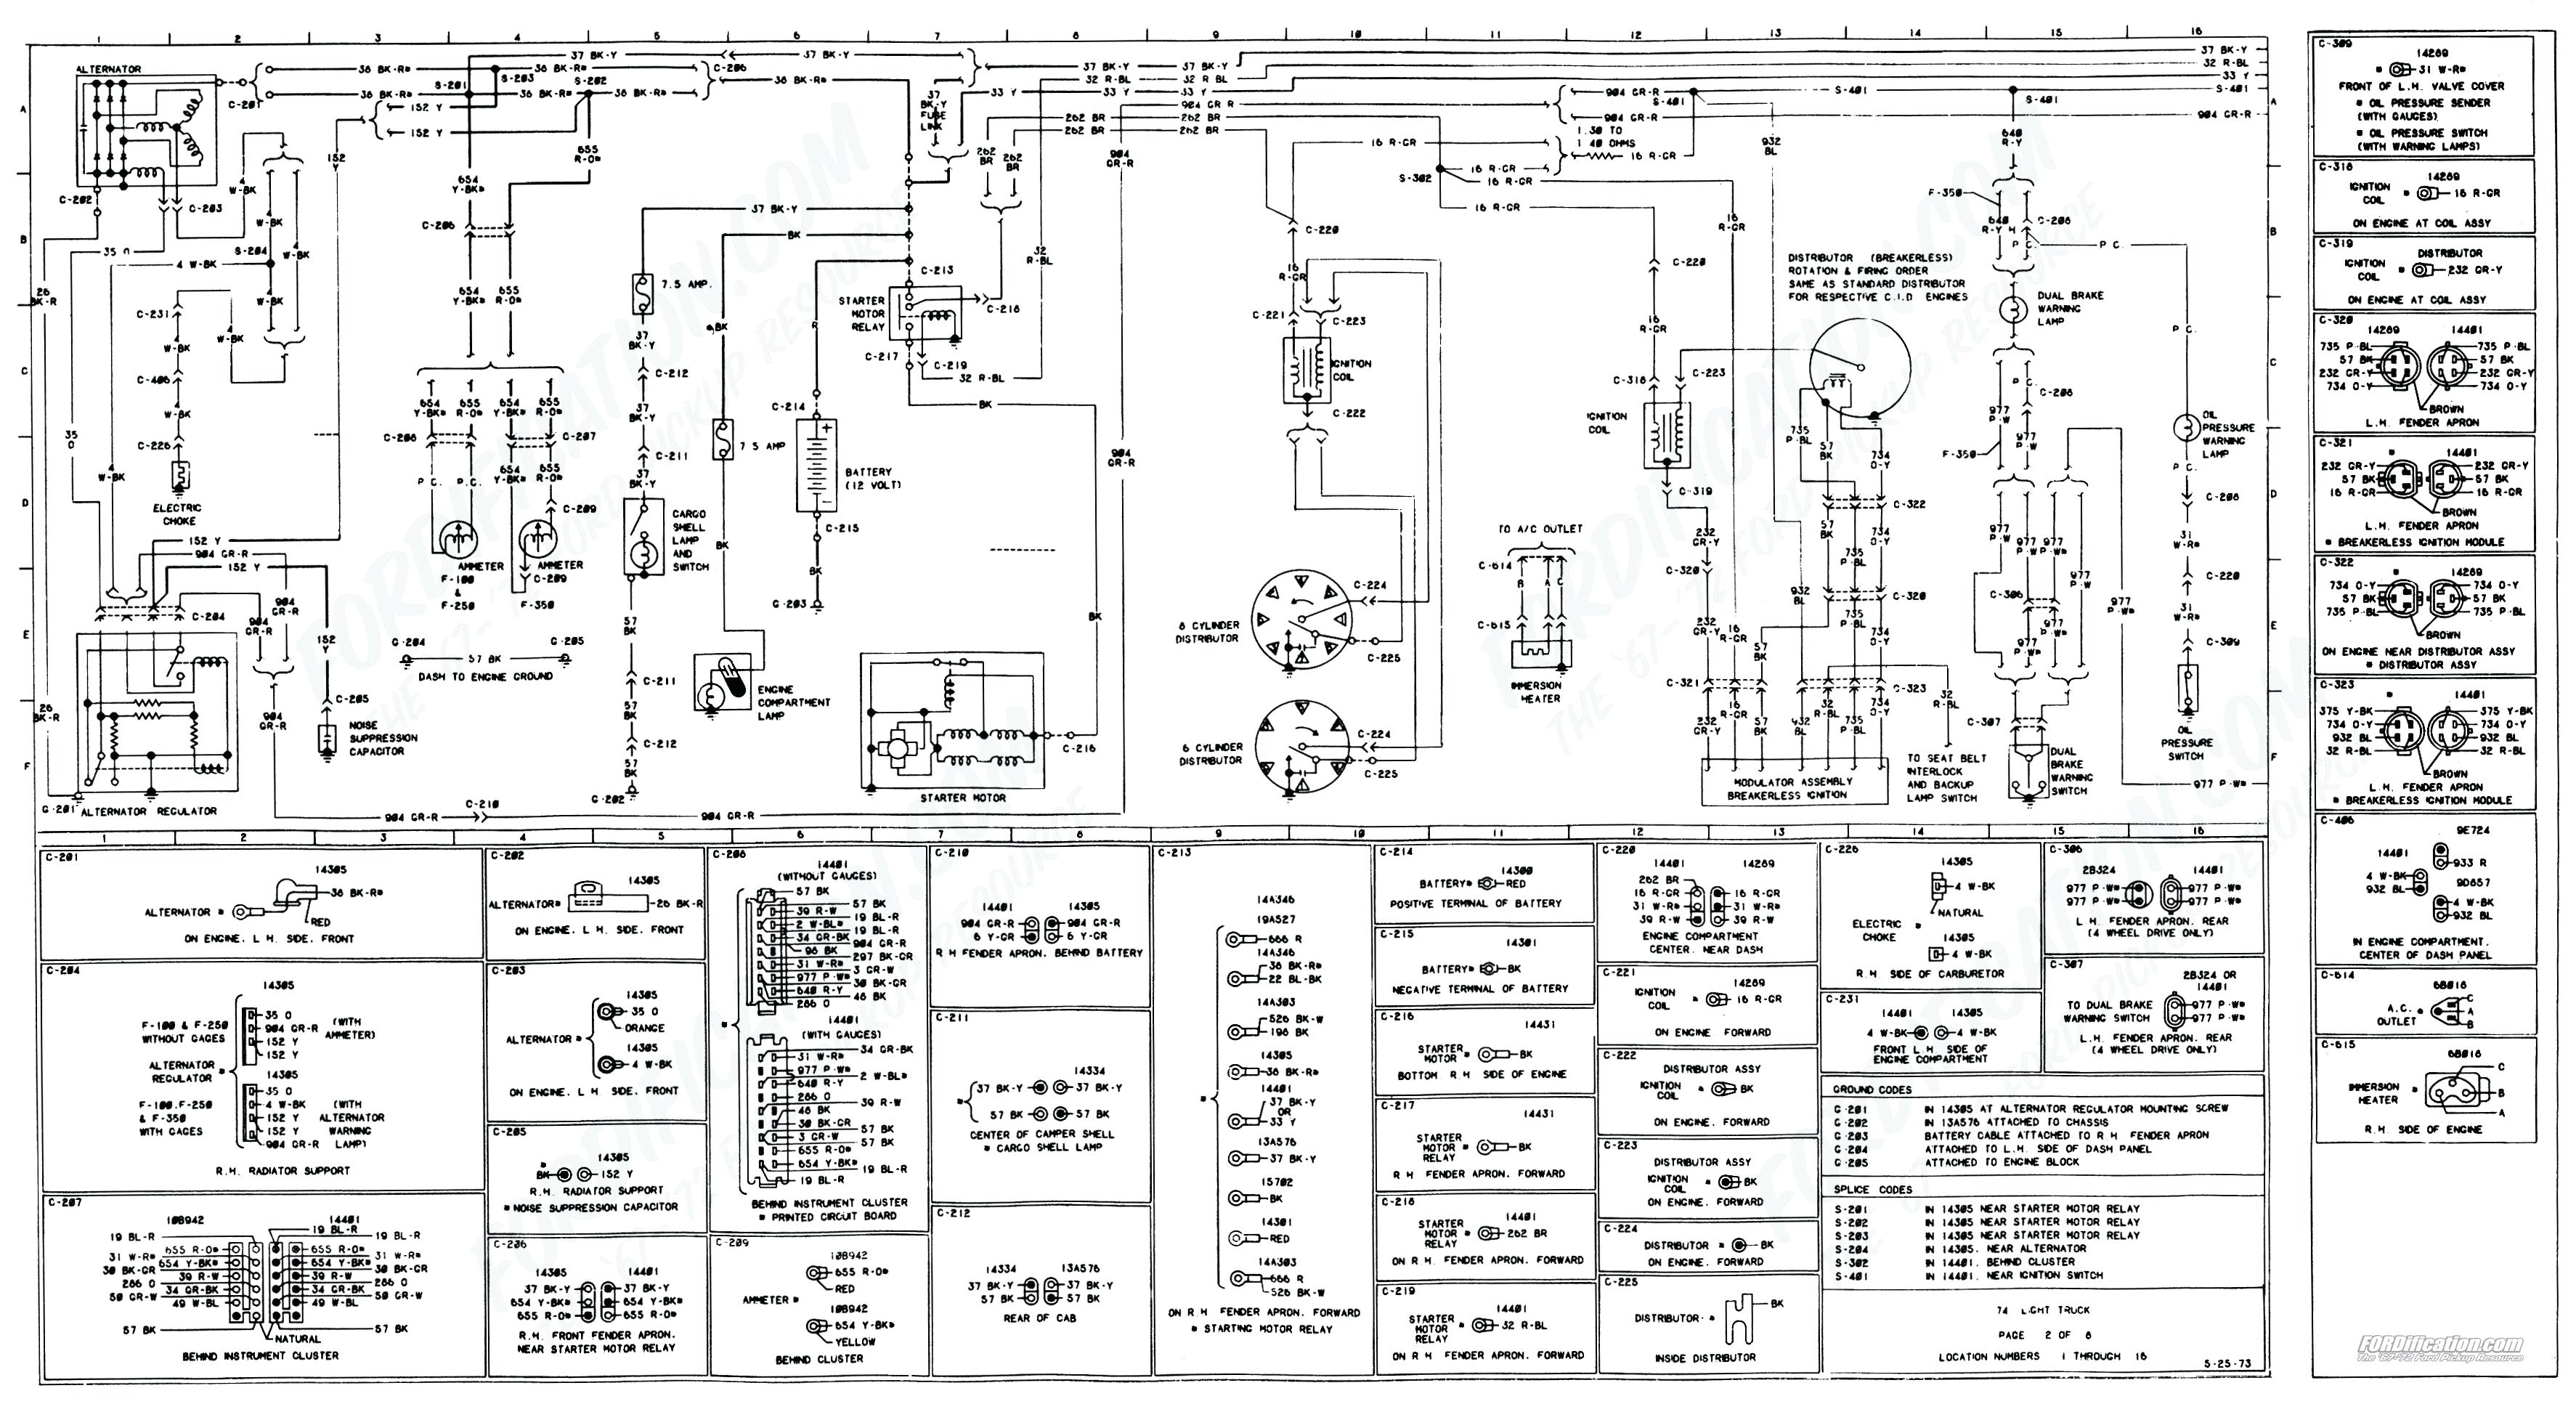 F650 Engine Diagram - Wiring Diagram & Schemas